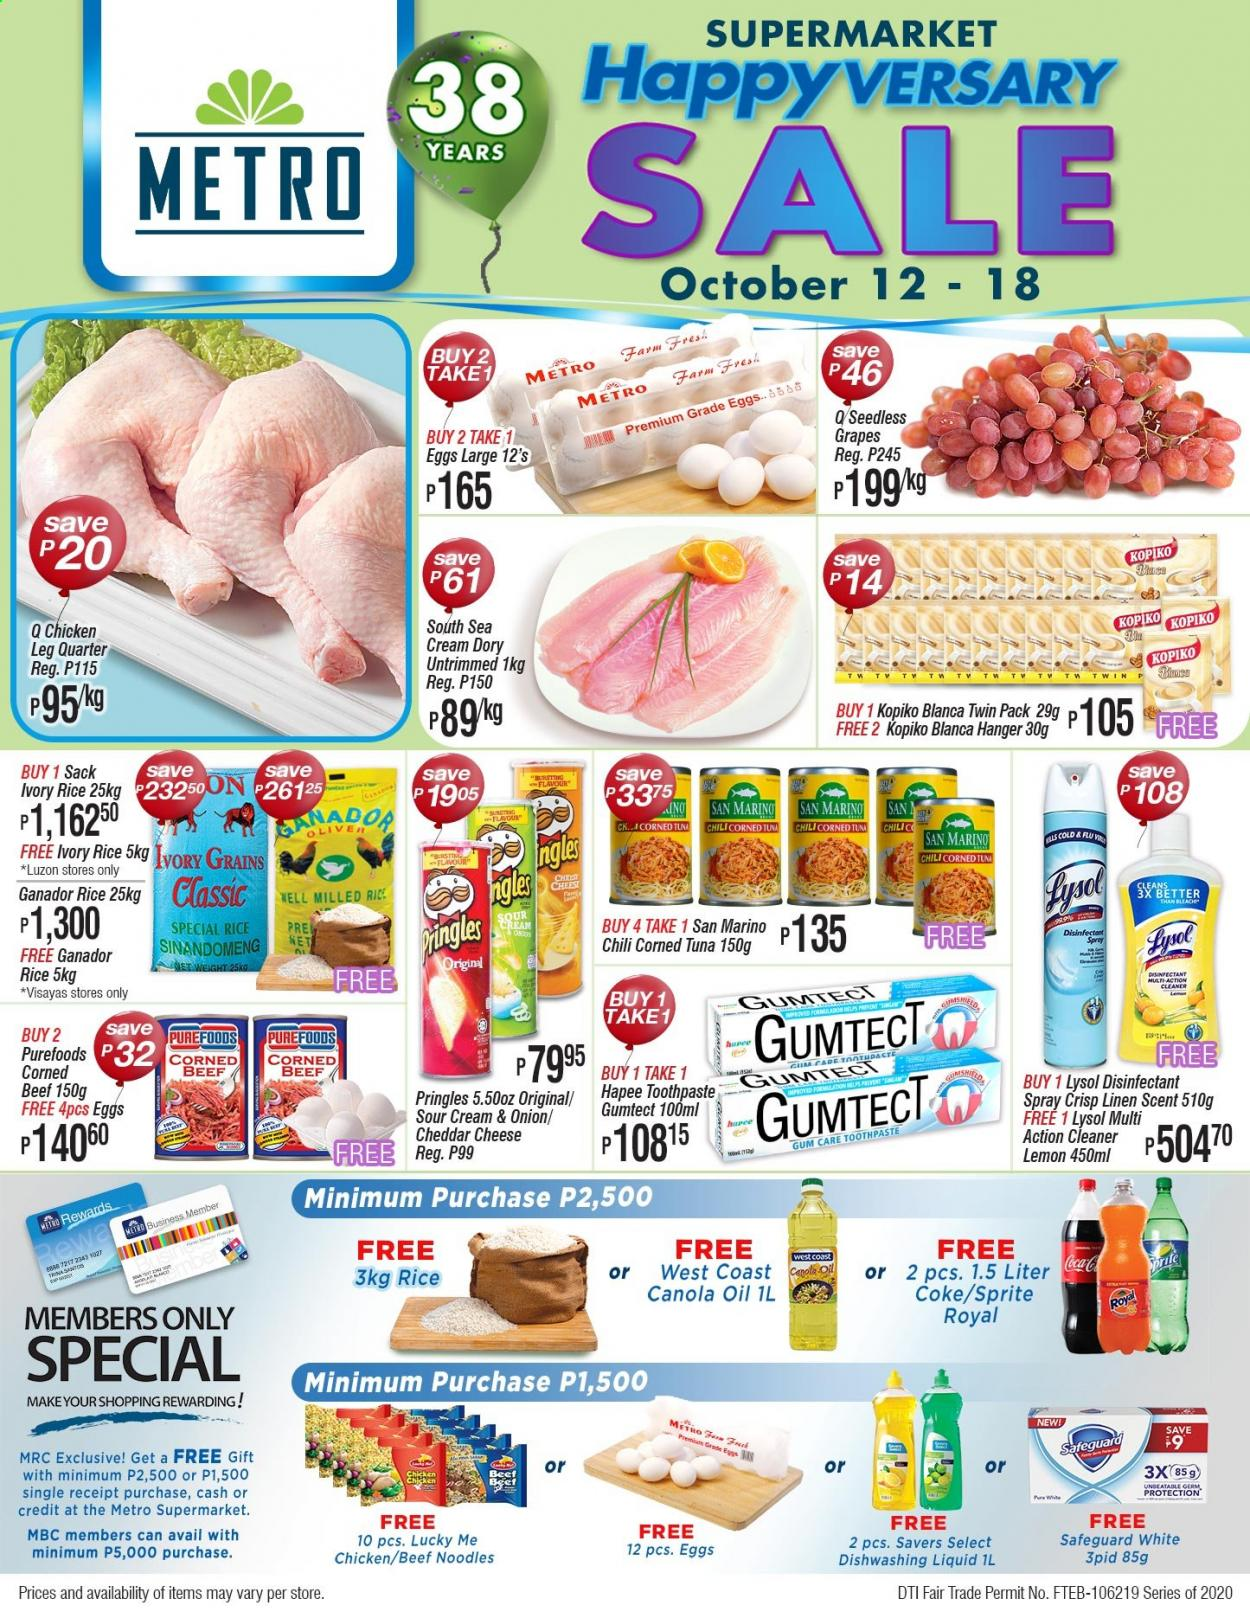 Metro offer  - 12.10.2020 - 18.10.2020 - Sales products - beef meat, canola oil, coca-cola, corned beef, cream, eggs, cold & flu, grapes, lysol, rice, seedless grapes, sour cream, spray, sprite, tuna, pringles, cheddar, chicken, onion, cheese, noodles, toothpaste, gum, dishwashing liquid, hanger, cleaner, liquid, lemon, metro. Page 1.